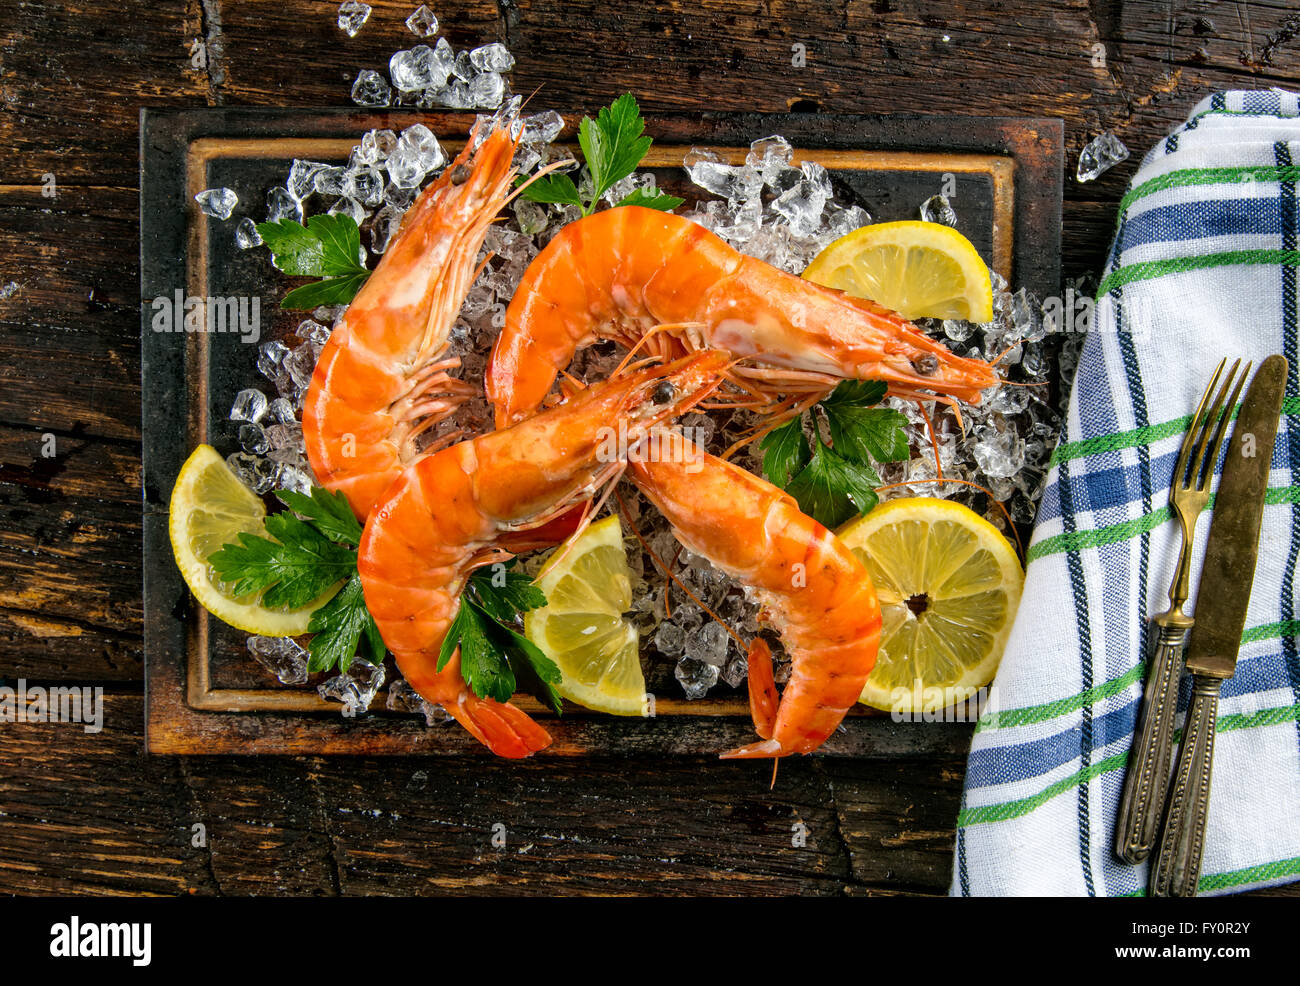 Cooked prawns served on dark wood - Stock Image